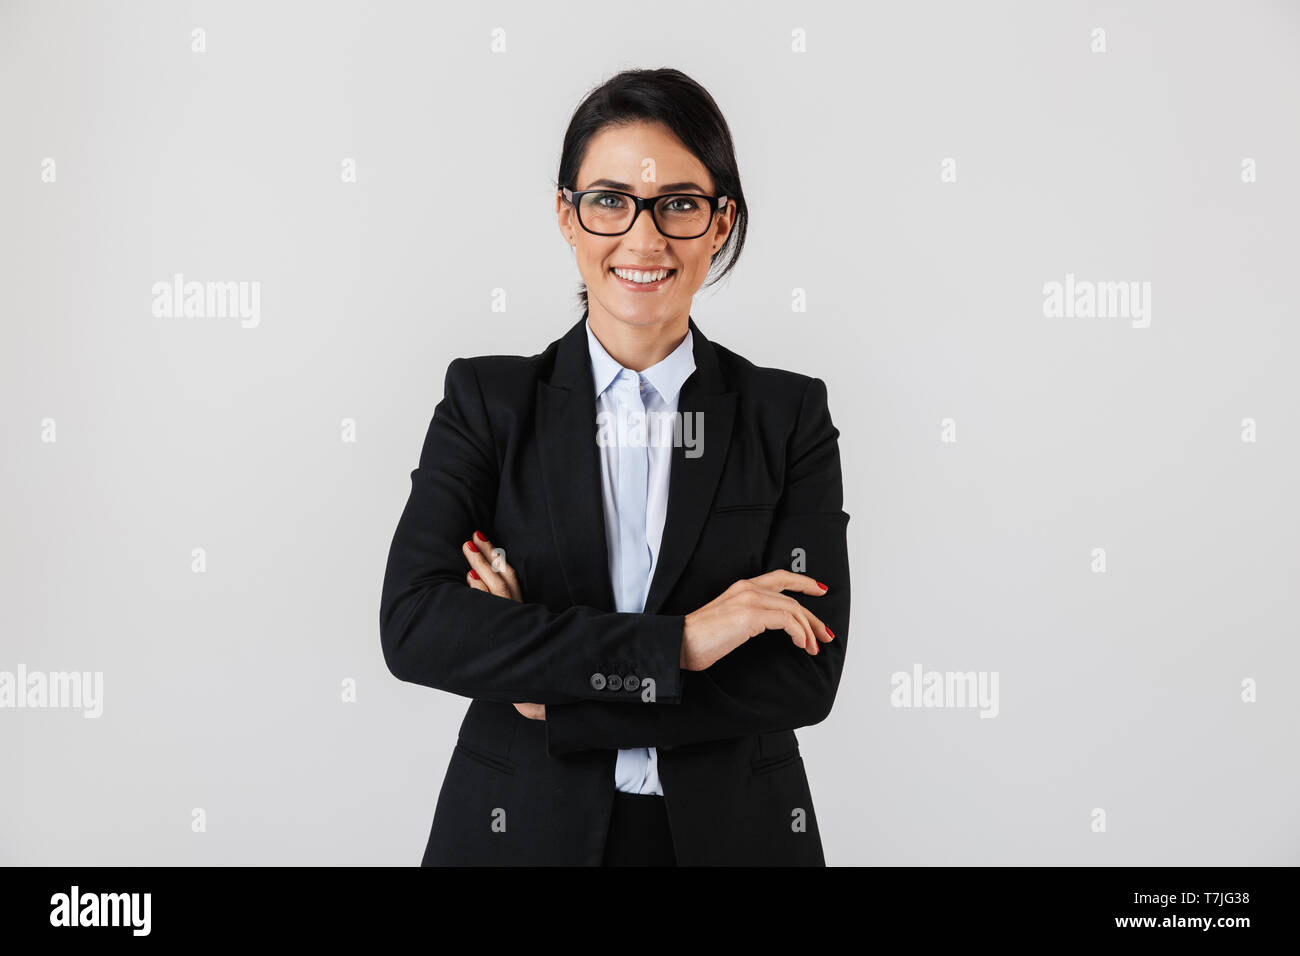 Portrait of successful businesswoman 30s in formal wear and eyeglasses standing in the office isolated over white background - Stock Image